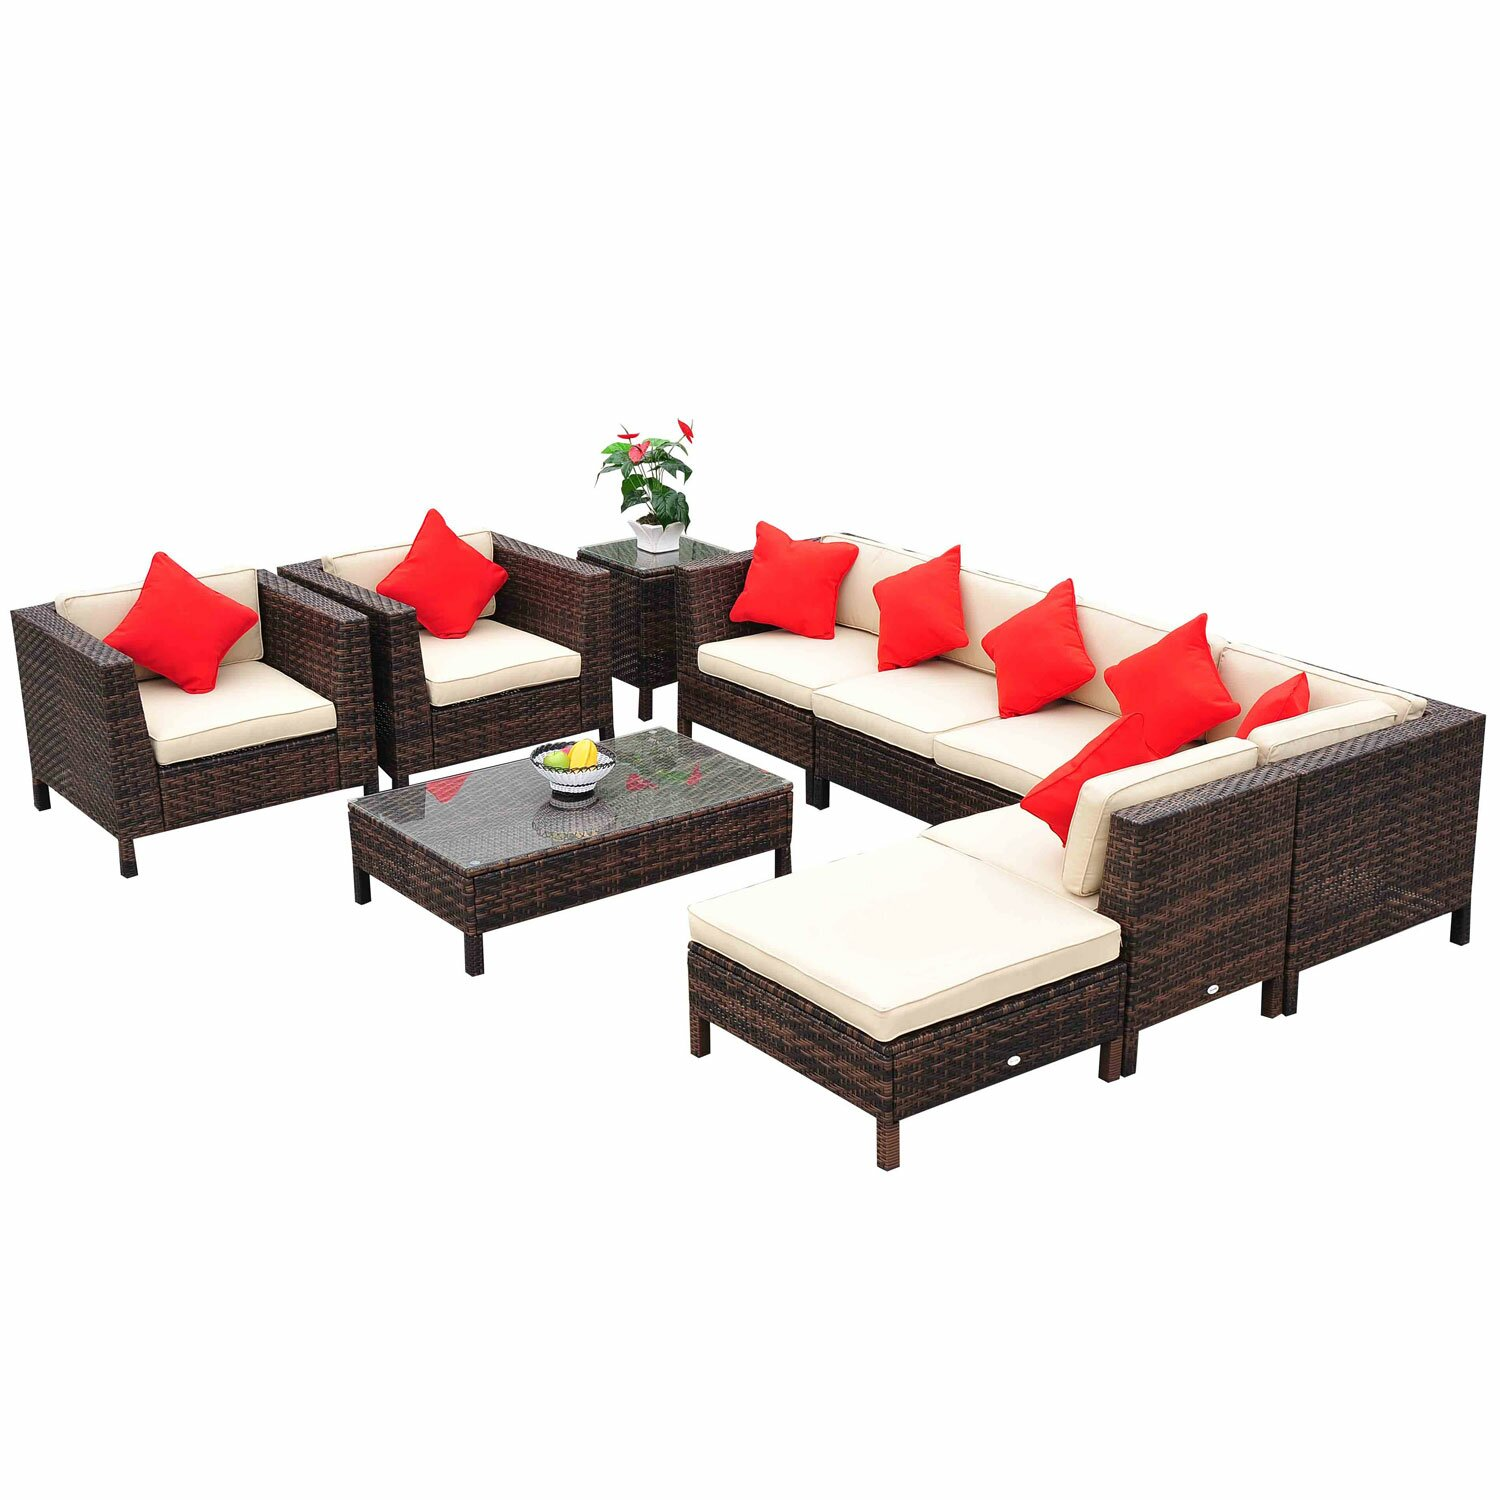 Outsunny 9 piece lounge seating group with cushions for 2 piece furniture set